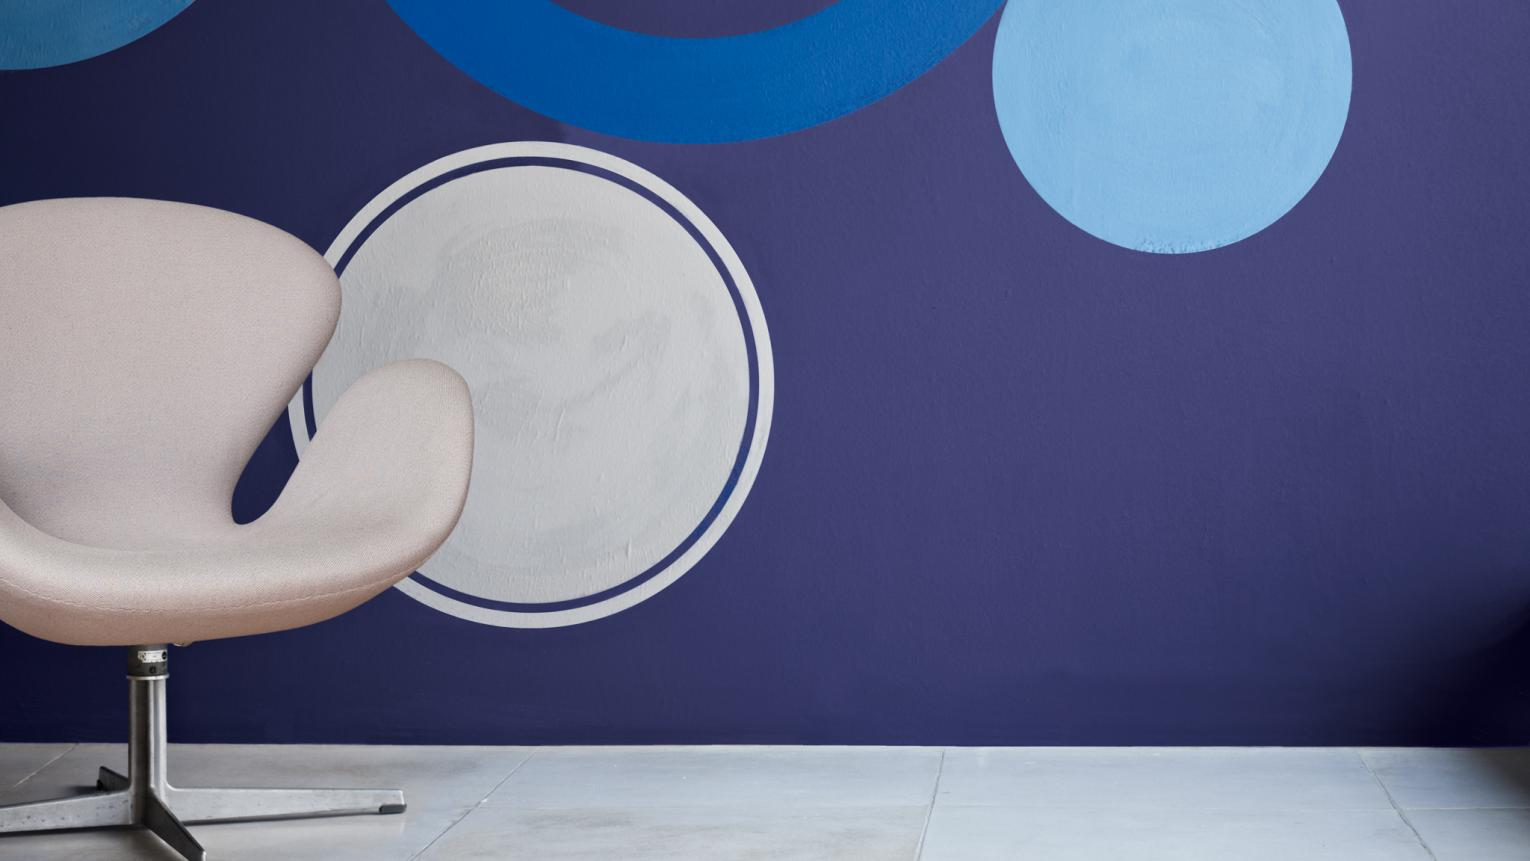 Contrasting blue circles on an indigo wall creates energy.